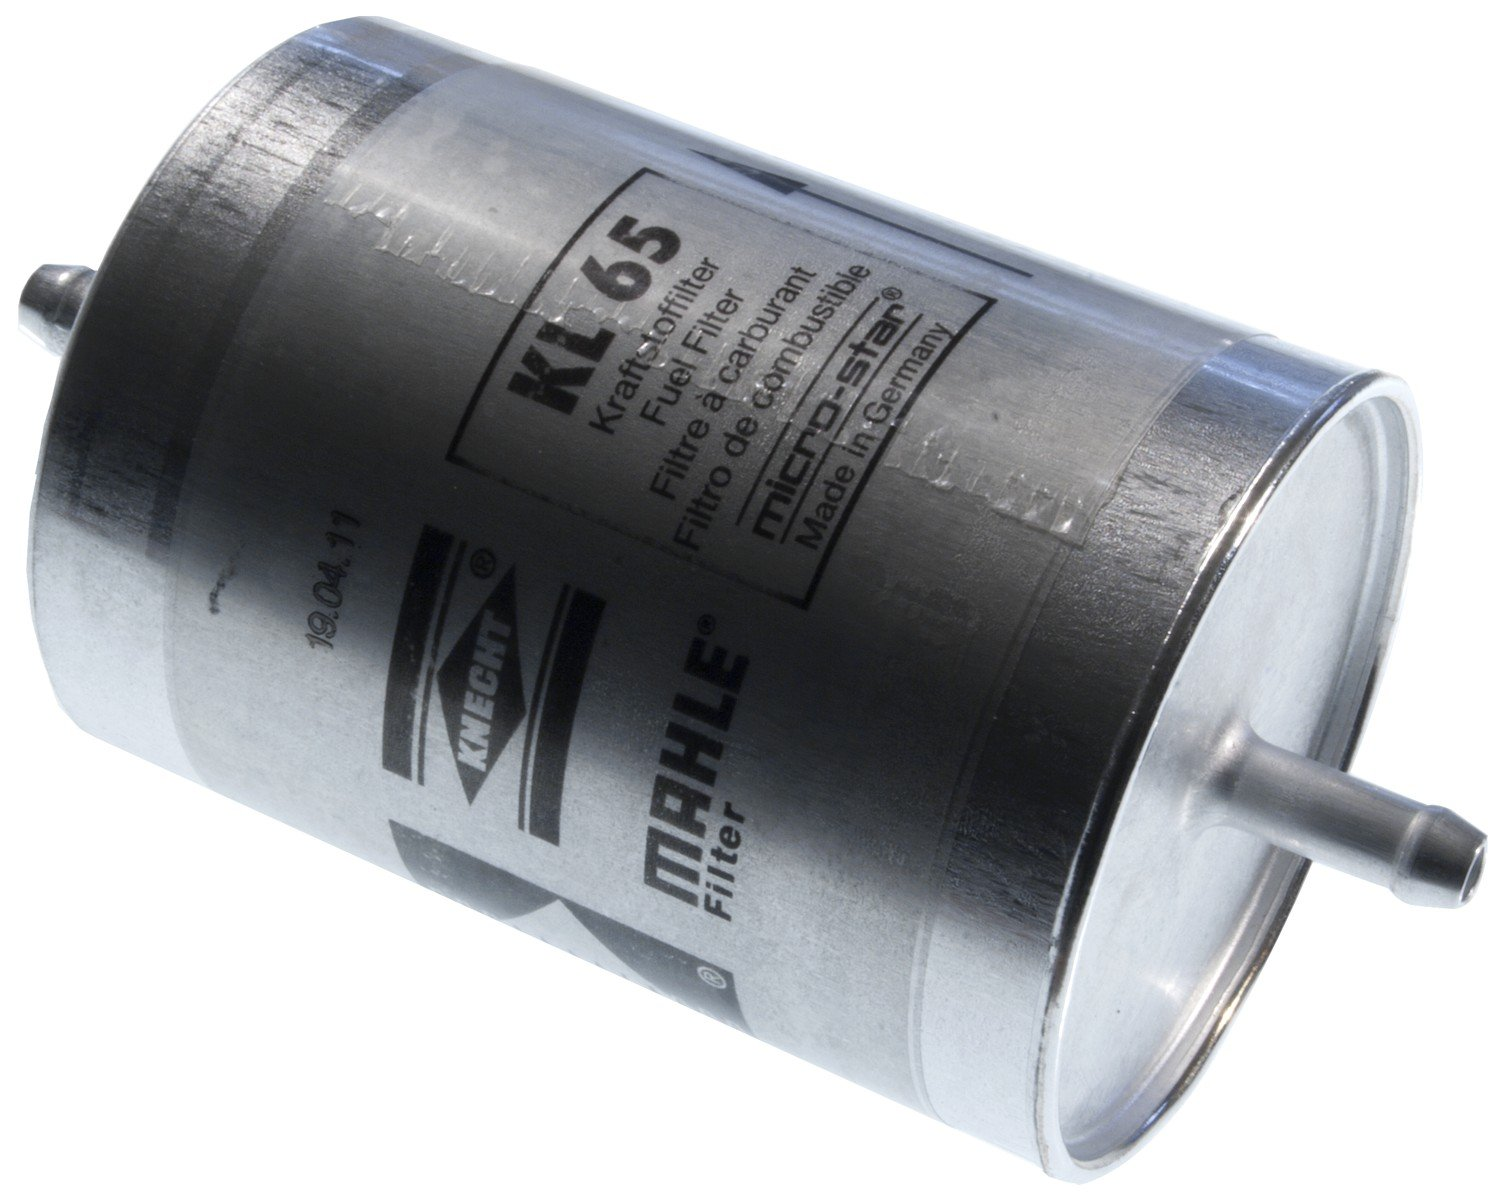 hight resolution of 2009 mercedes benz g55 amg fuel filter m1 kl 65